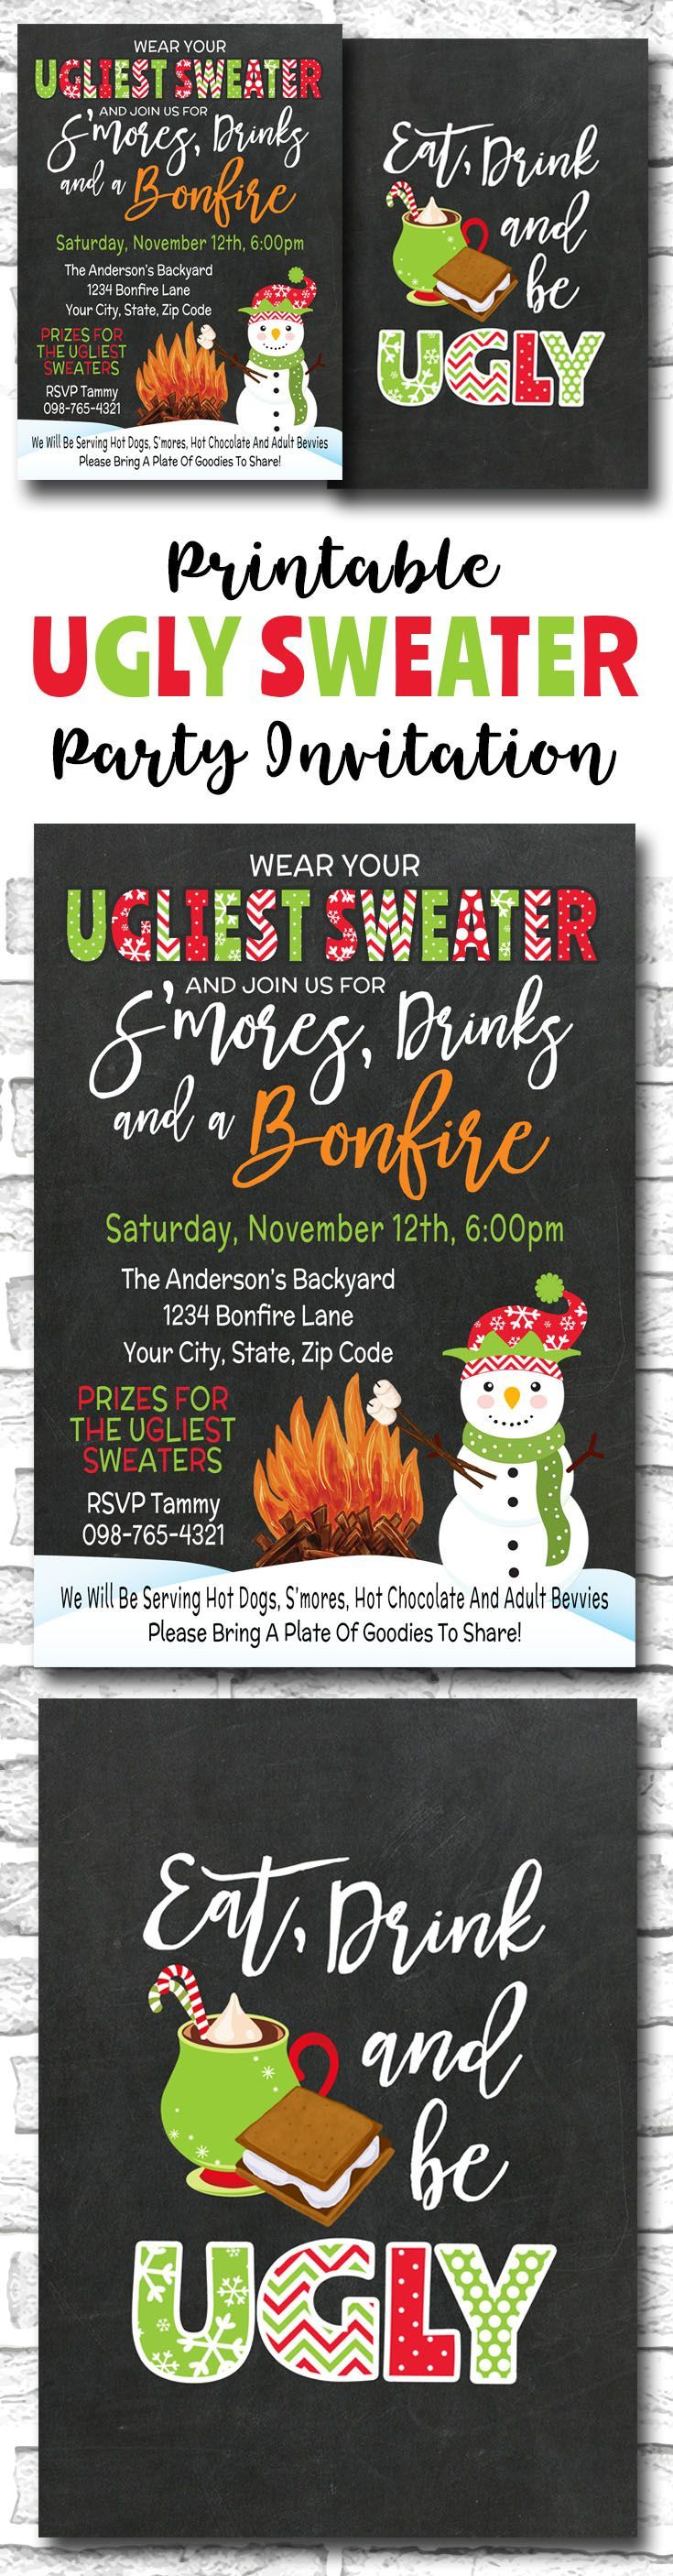 Printable Tacky Ugly Sweater Christmas Party Invitation For An Outdoor Smores And Bonfire Holiday Party, Eat Drink And Be Ugly